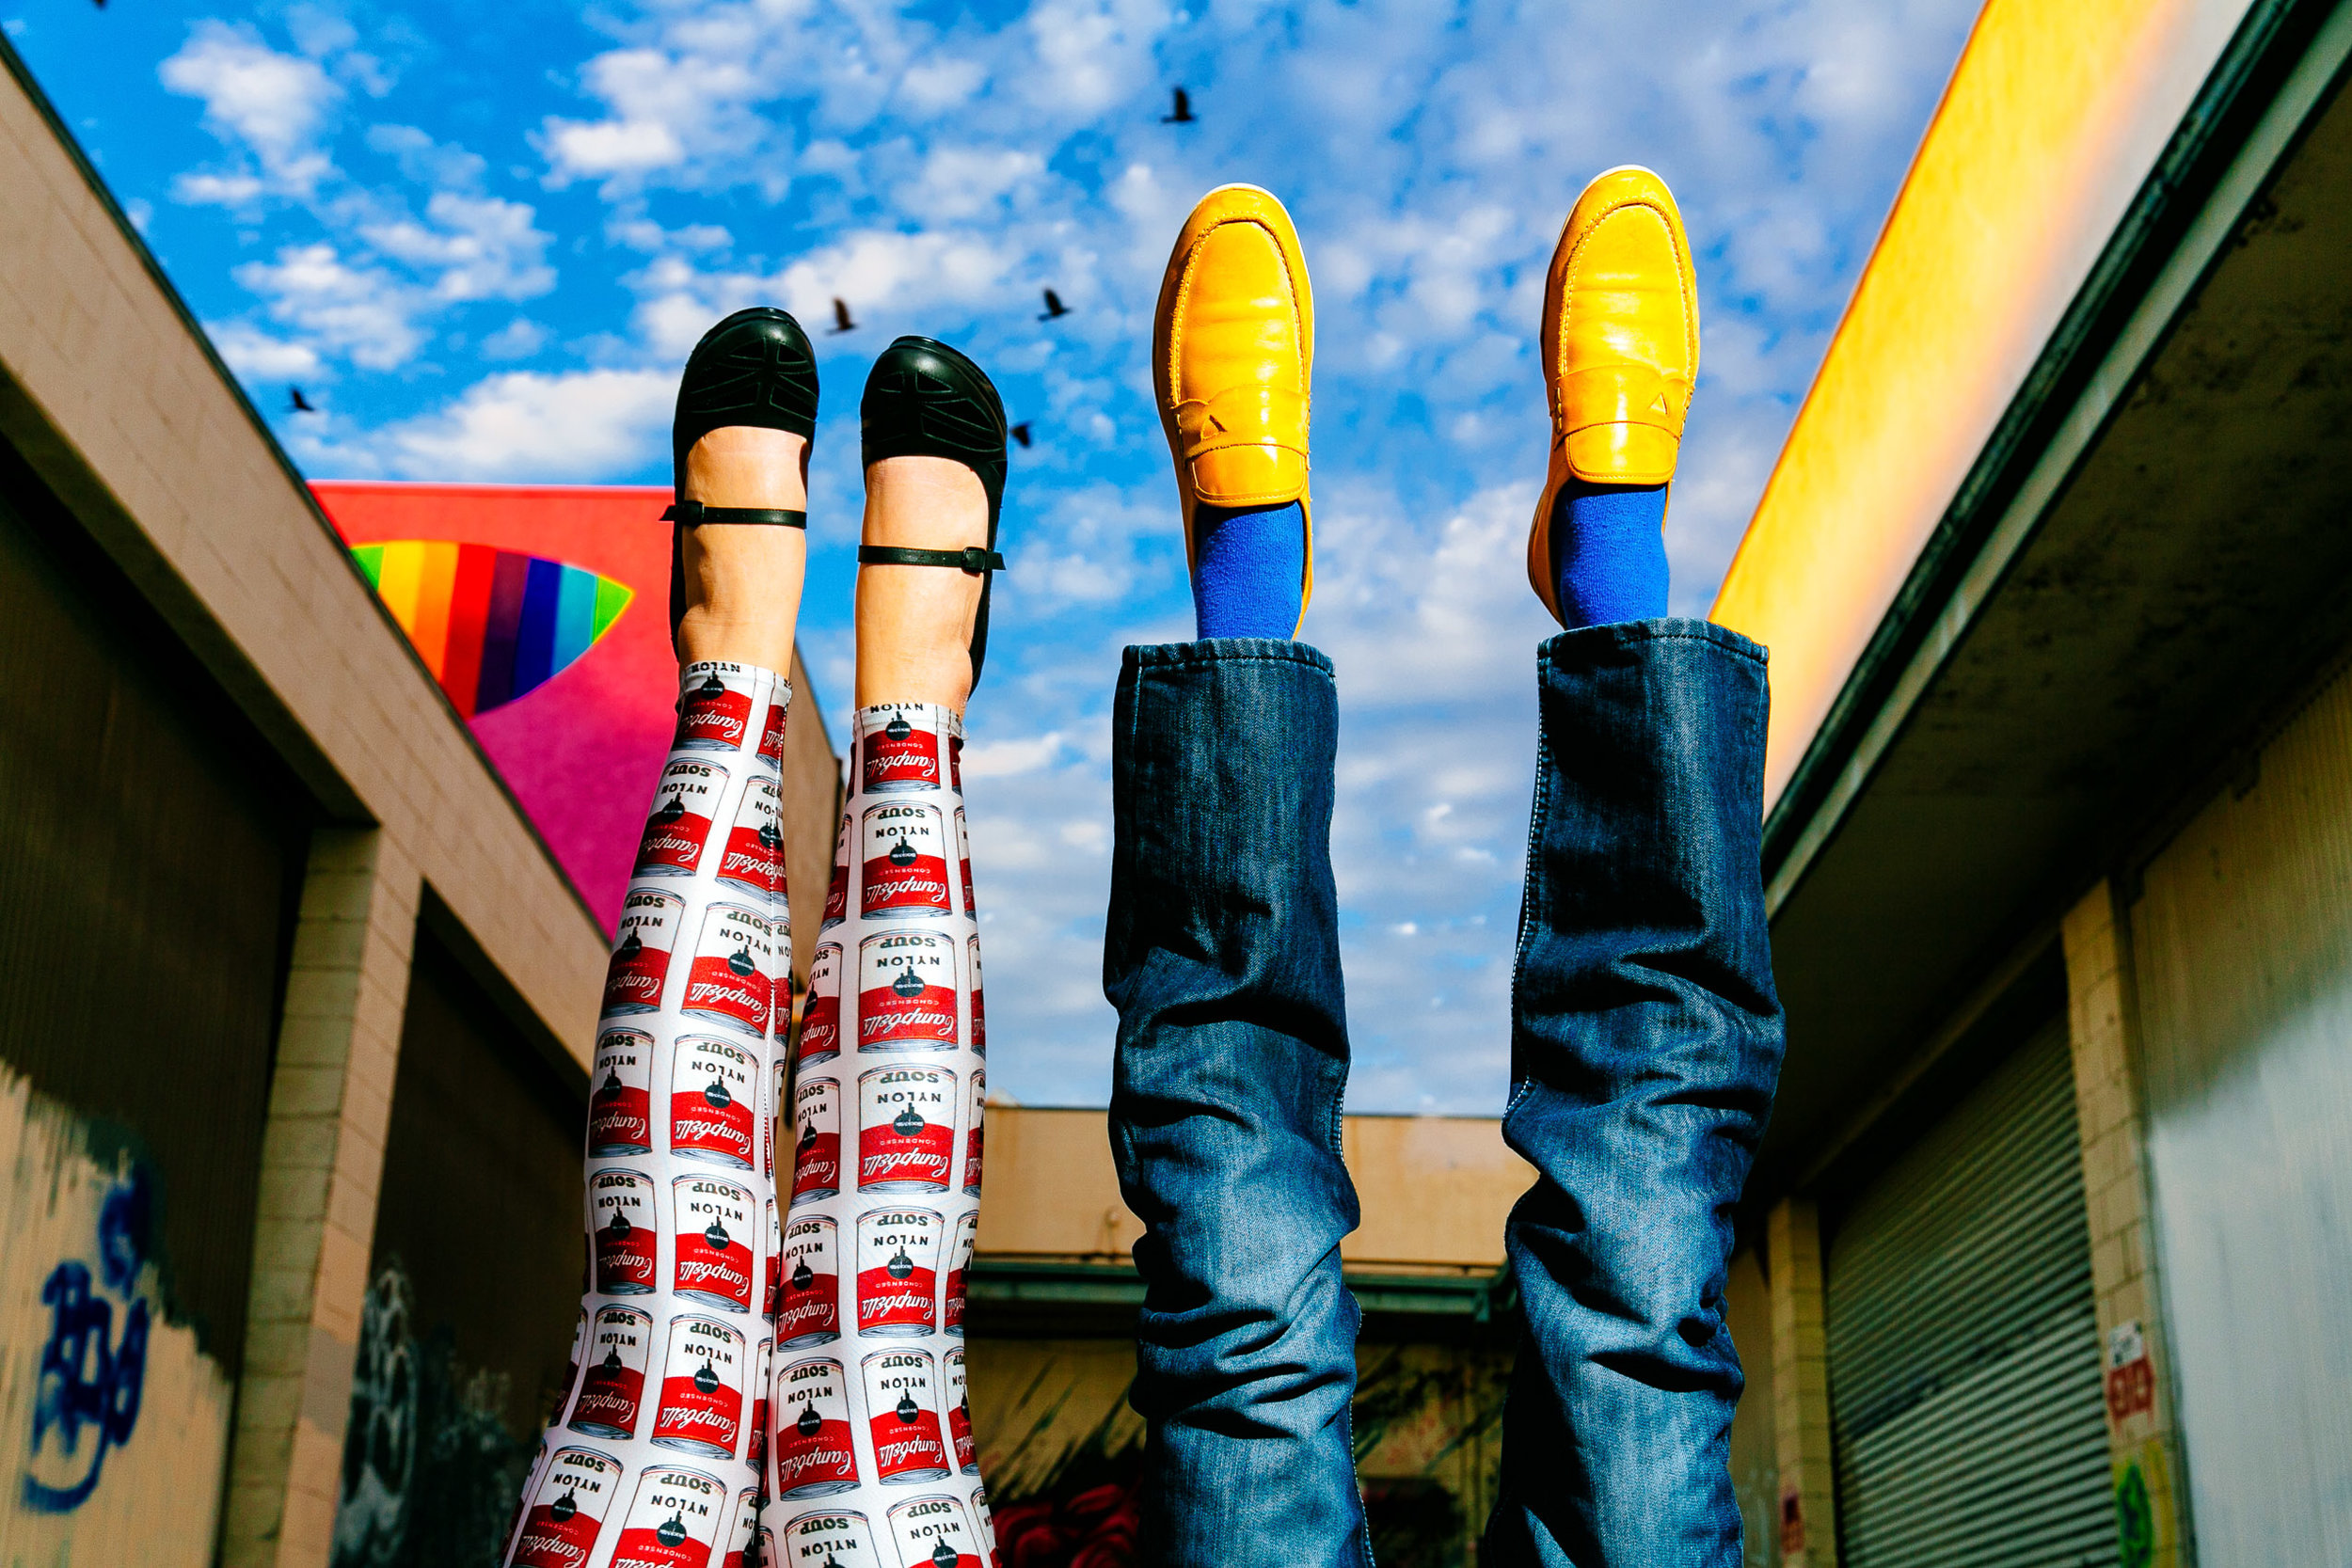 super-colorful-and-fun-engagement-idea-just-take-photo-of-feet.jpg